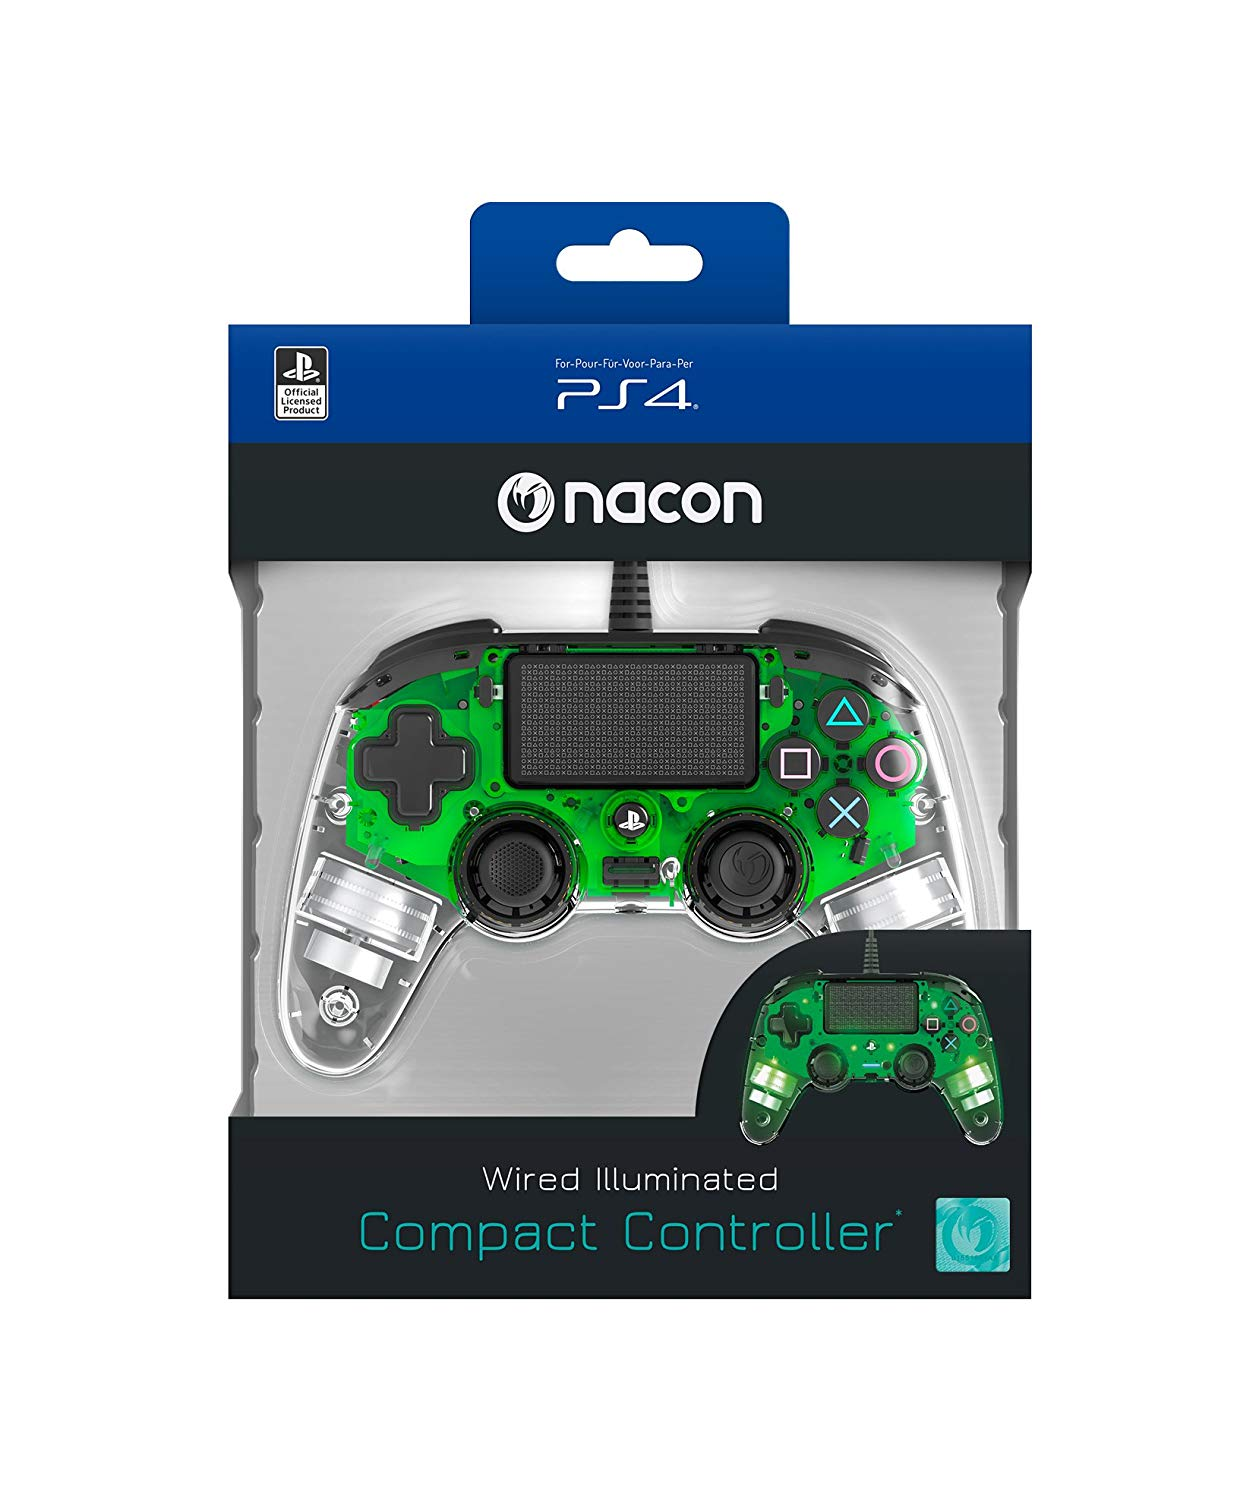 Nacon wired illuminated compact controller green packaging